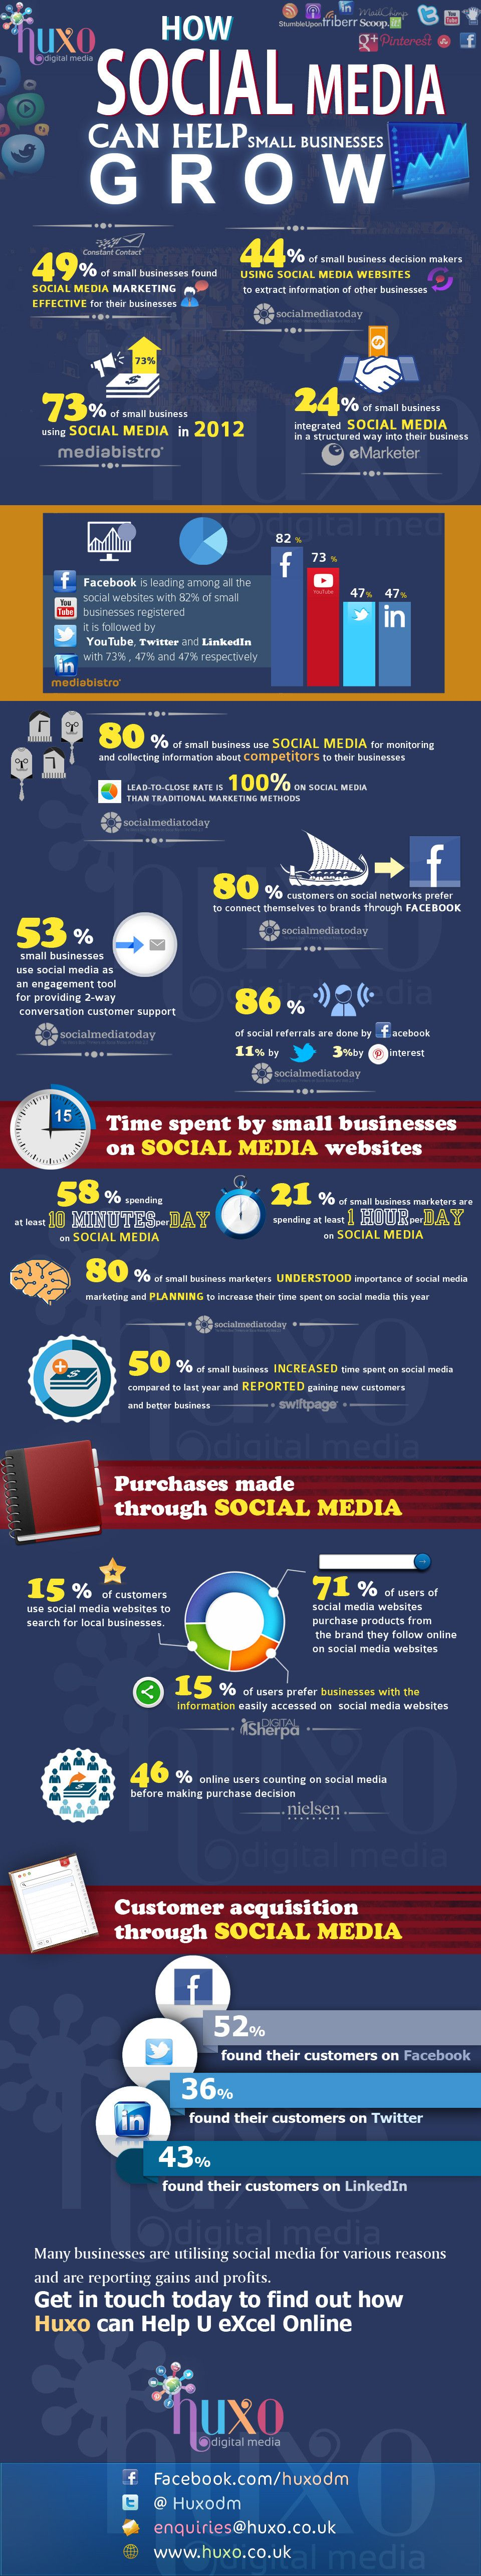 Liked on Pinterest: 30  Social Media Statistics - Growth of #SMBs #infographic  #SocialMedia